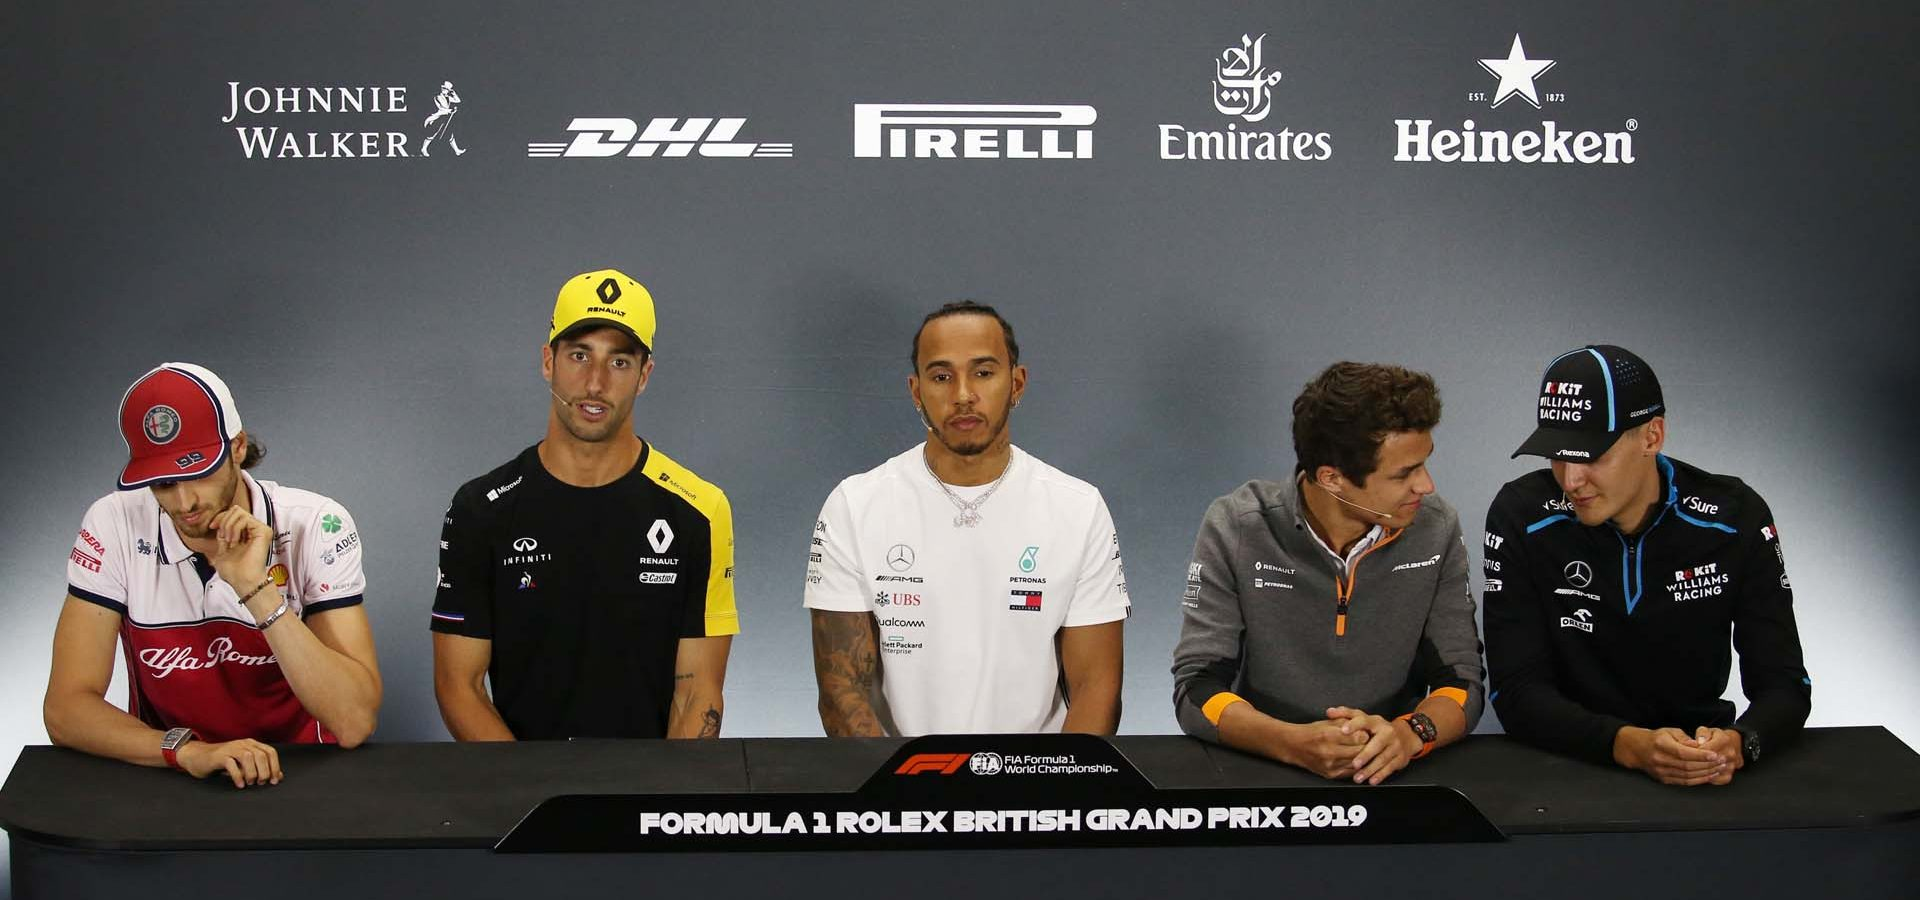 The FIA Press Conference (L to R): Antonio Giovinazzi (ITA) Alfa Romeo Racing; Daniel Ricciardo (AUS) Renault F1 Team; Lewis Hamilton (GBR) Mercedes AMG F1; Lando Norris (GBR) McLaren; George Russell (GBR) Williams Racing. British Grand Prix, Thursday 11th July 2019. Silverstone, England.